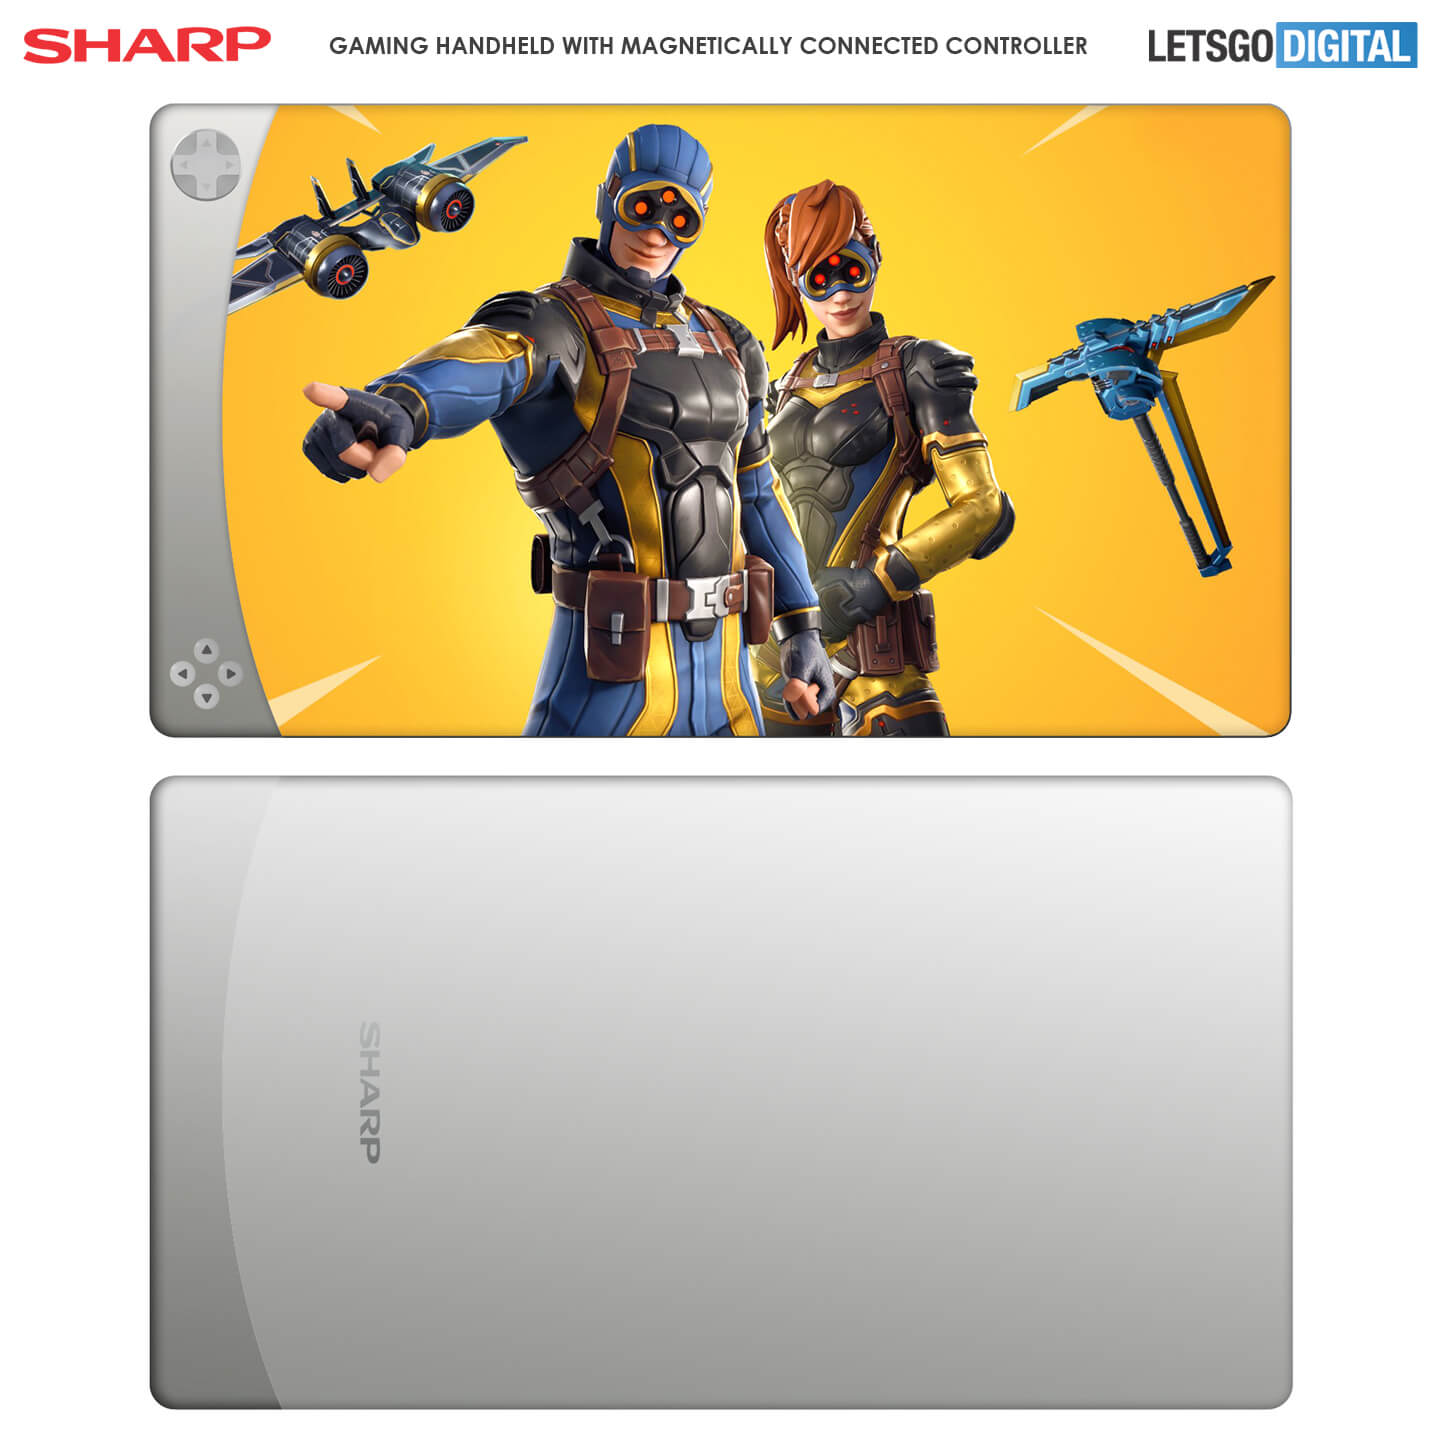 Sharp gaming handheld